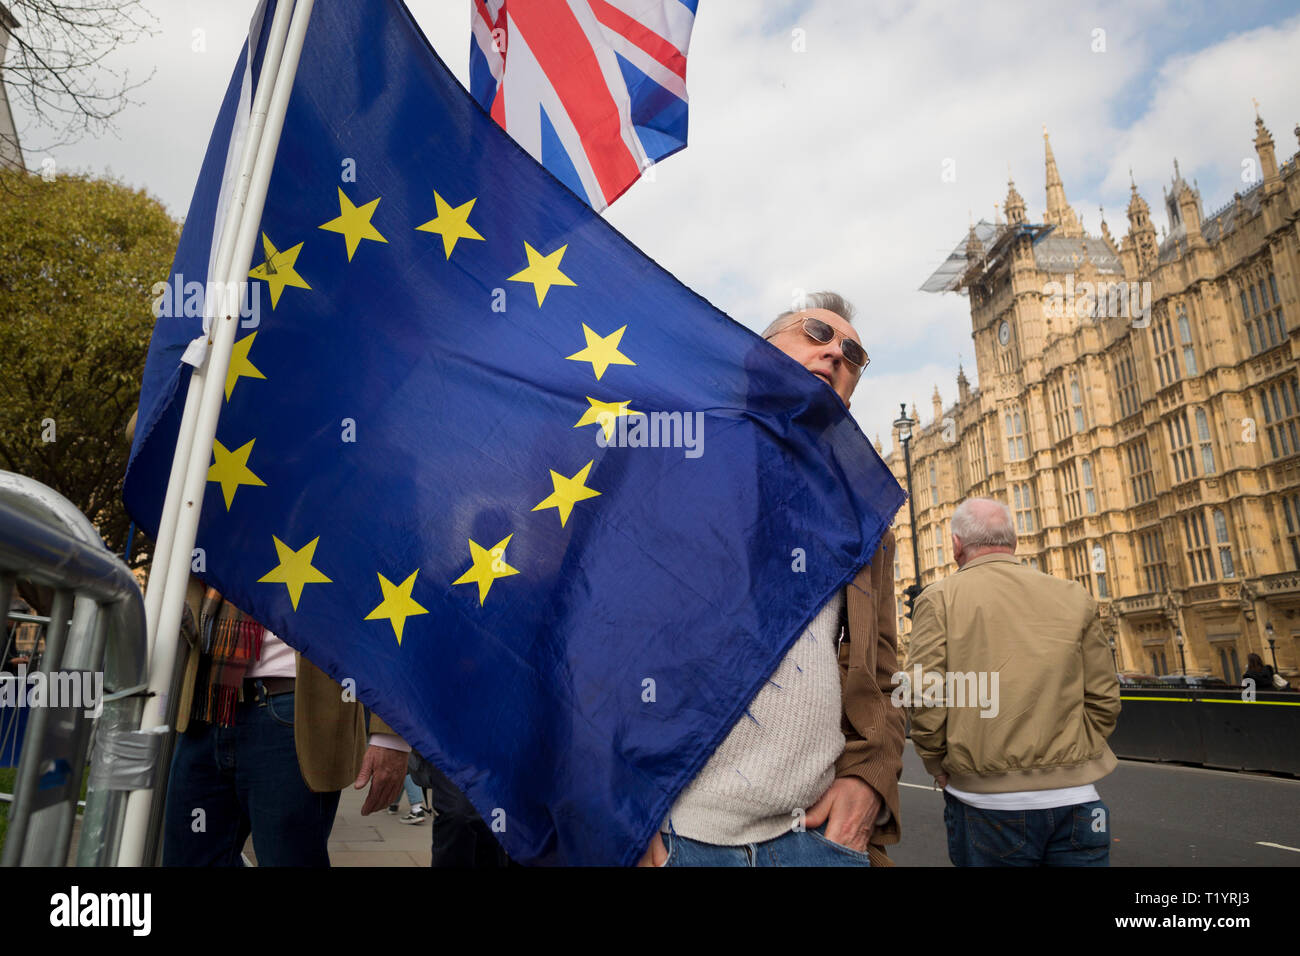 As MPs decide on how to progress with Brexit parliamentary procedure, and EU flag catches the face of a passer-by outside the UK Parliament in Westminster, on 28th March 2019, in London, England - Stock Image